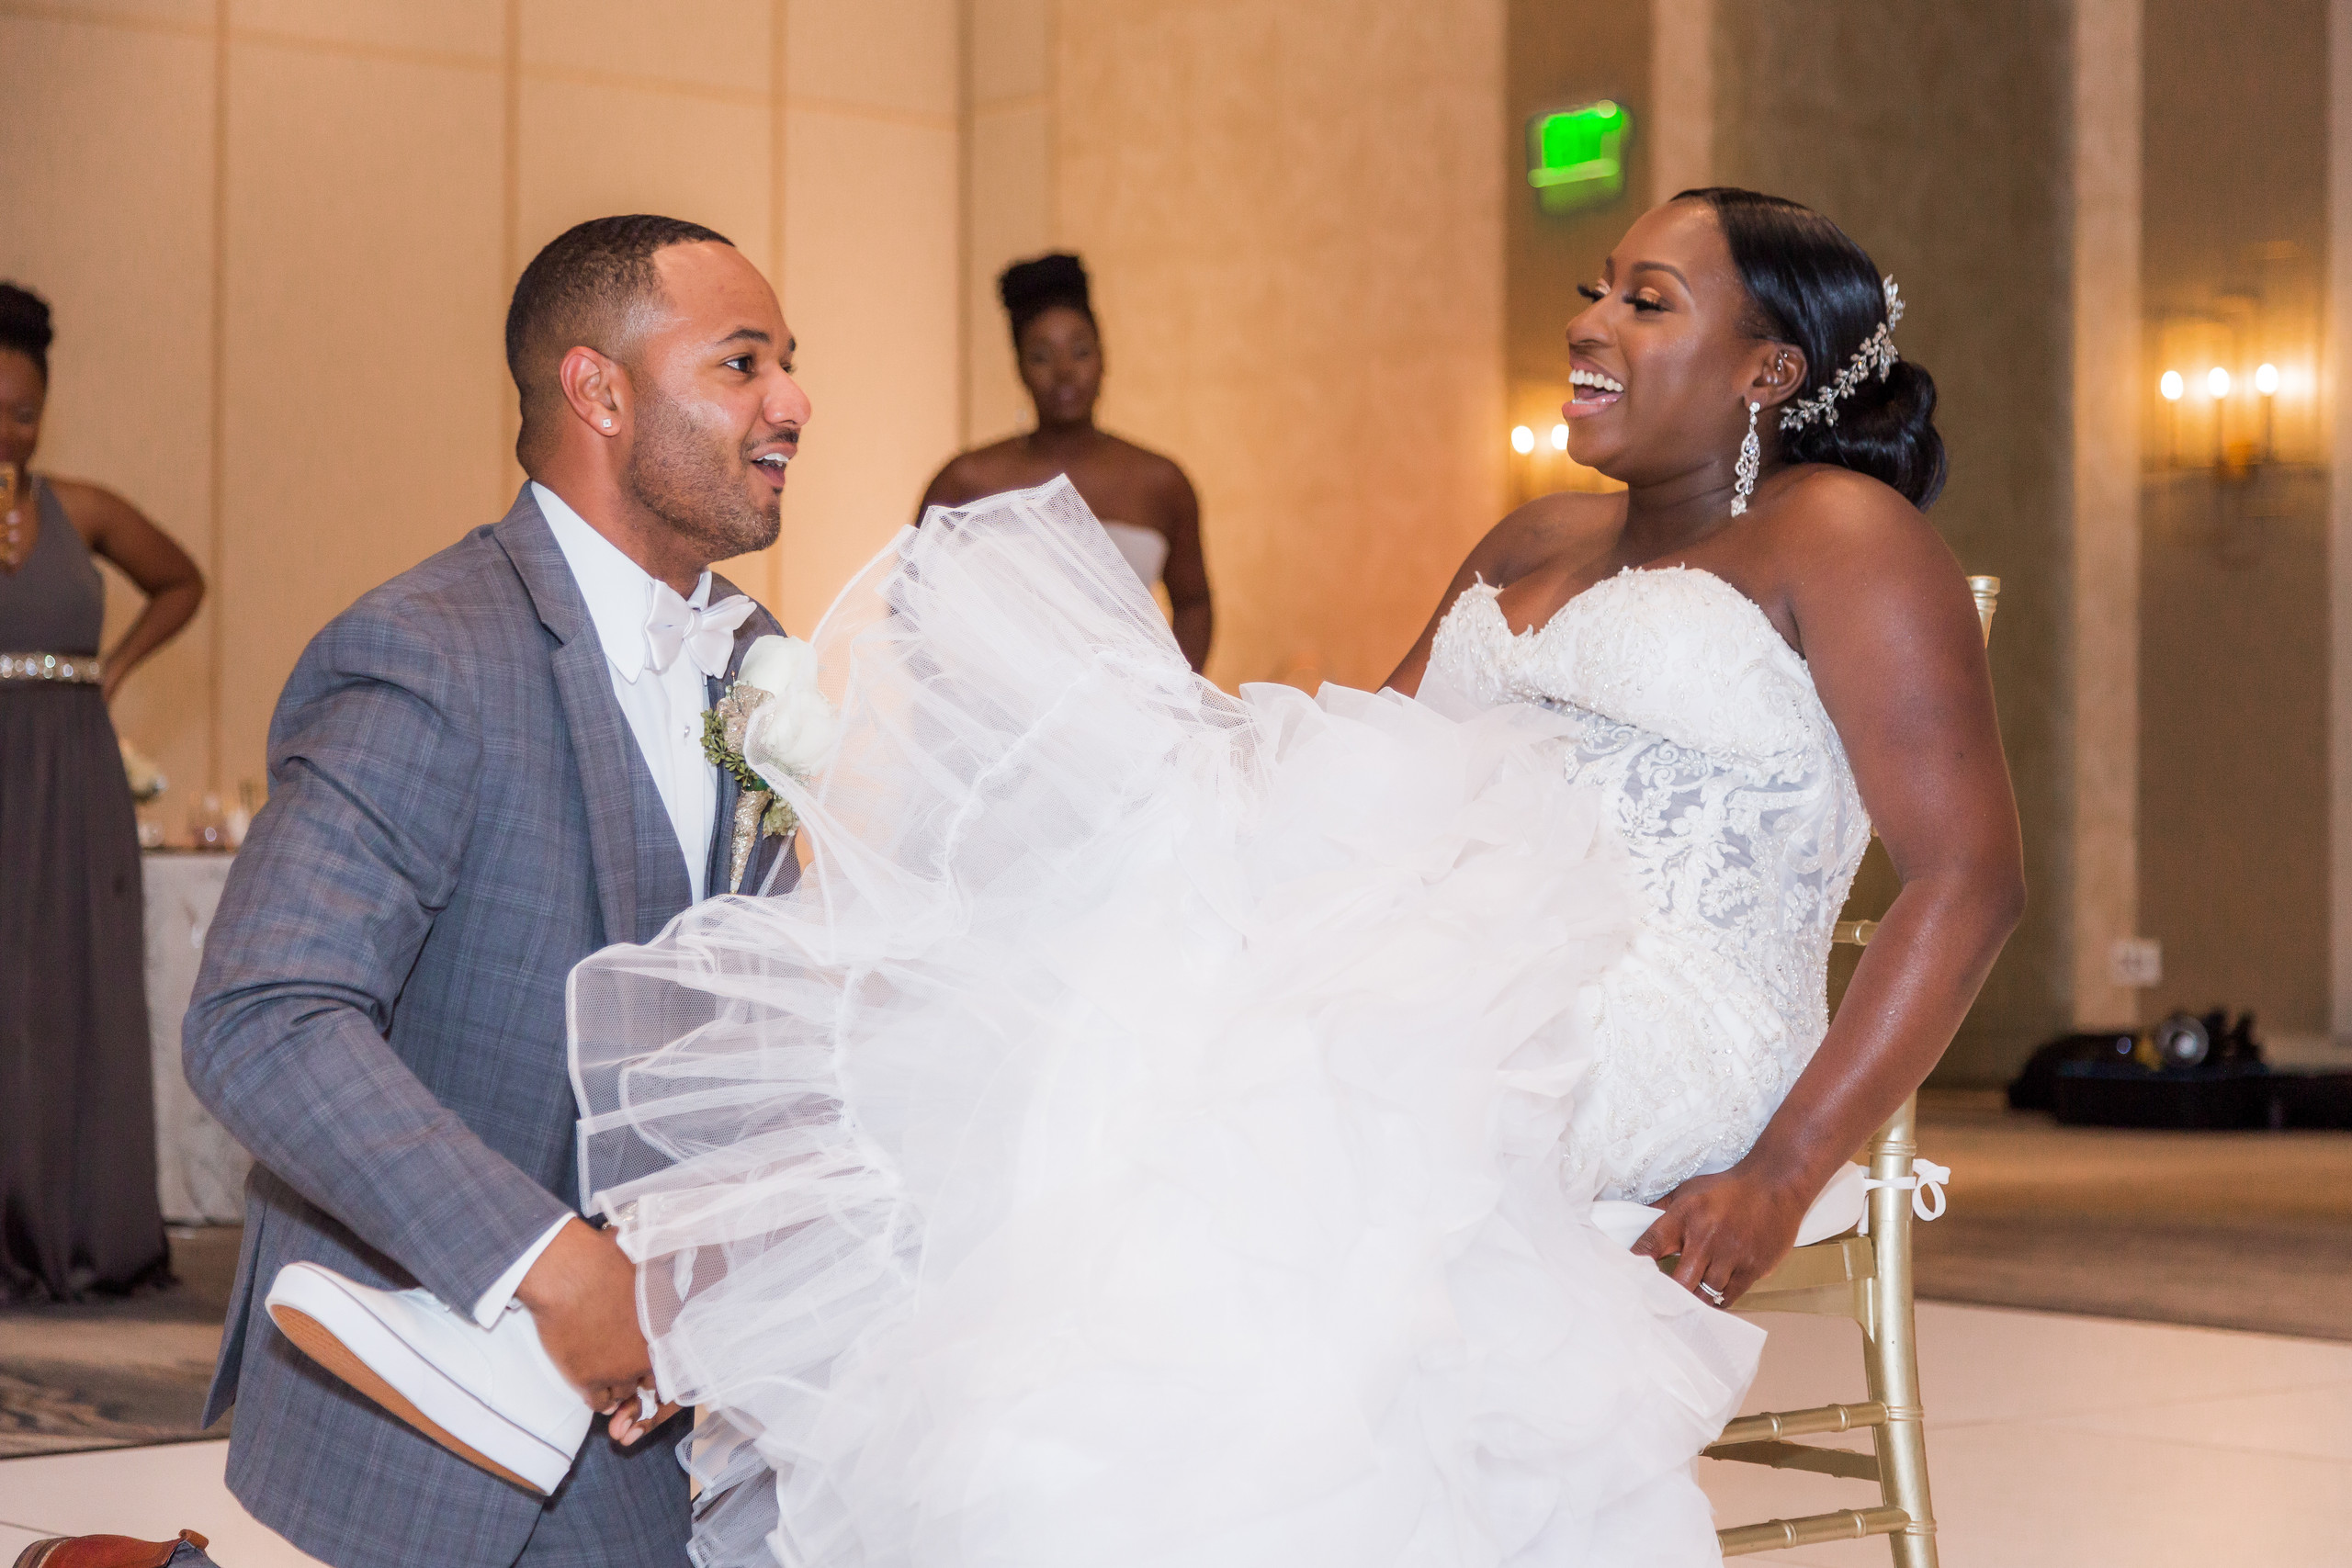 The groom removing the bride's garter to her delight during the wedding reception at the Hilton Main in Norfolk, Virginia.